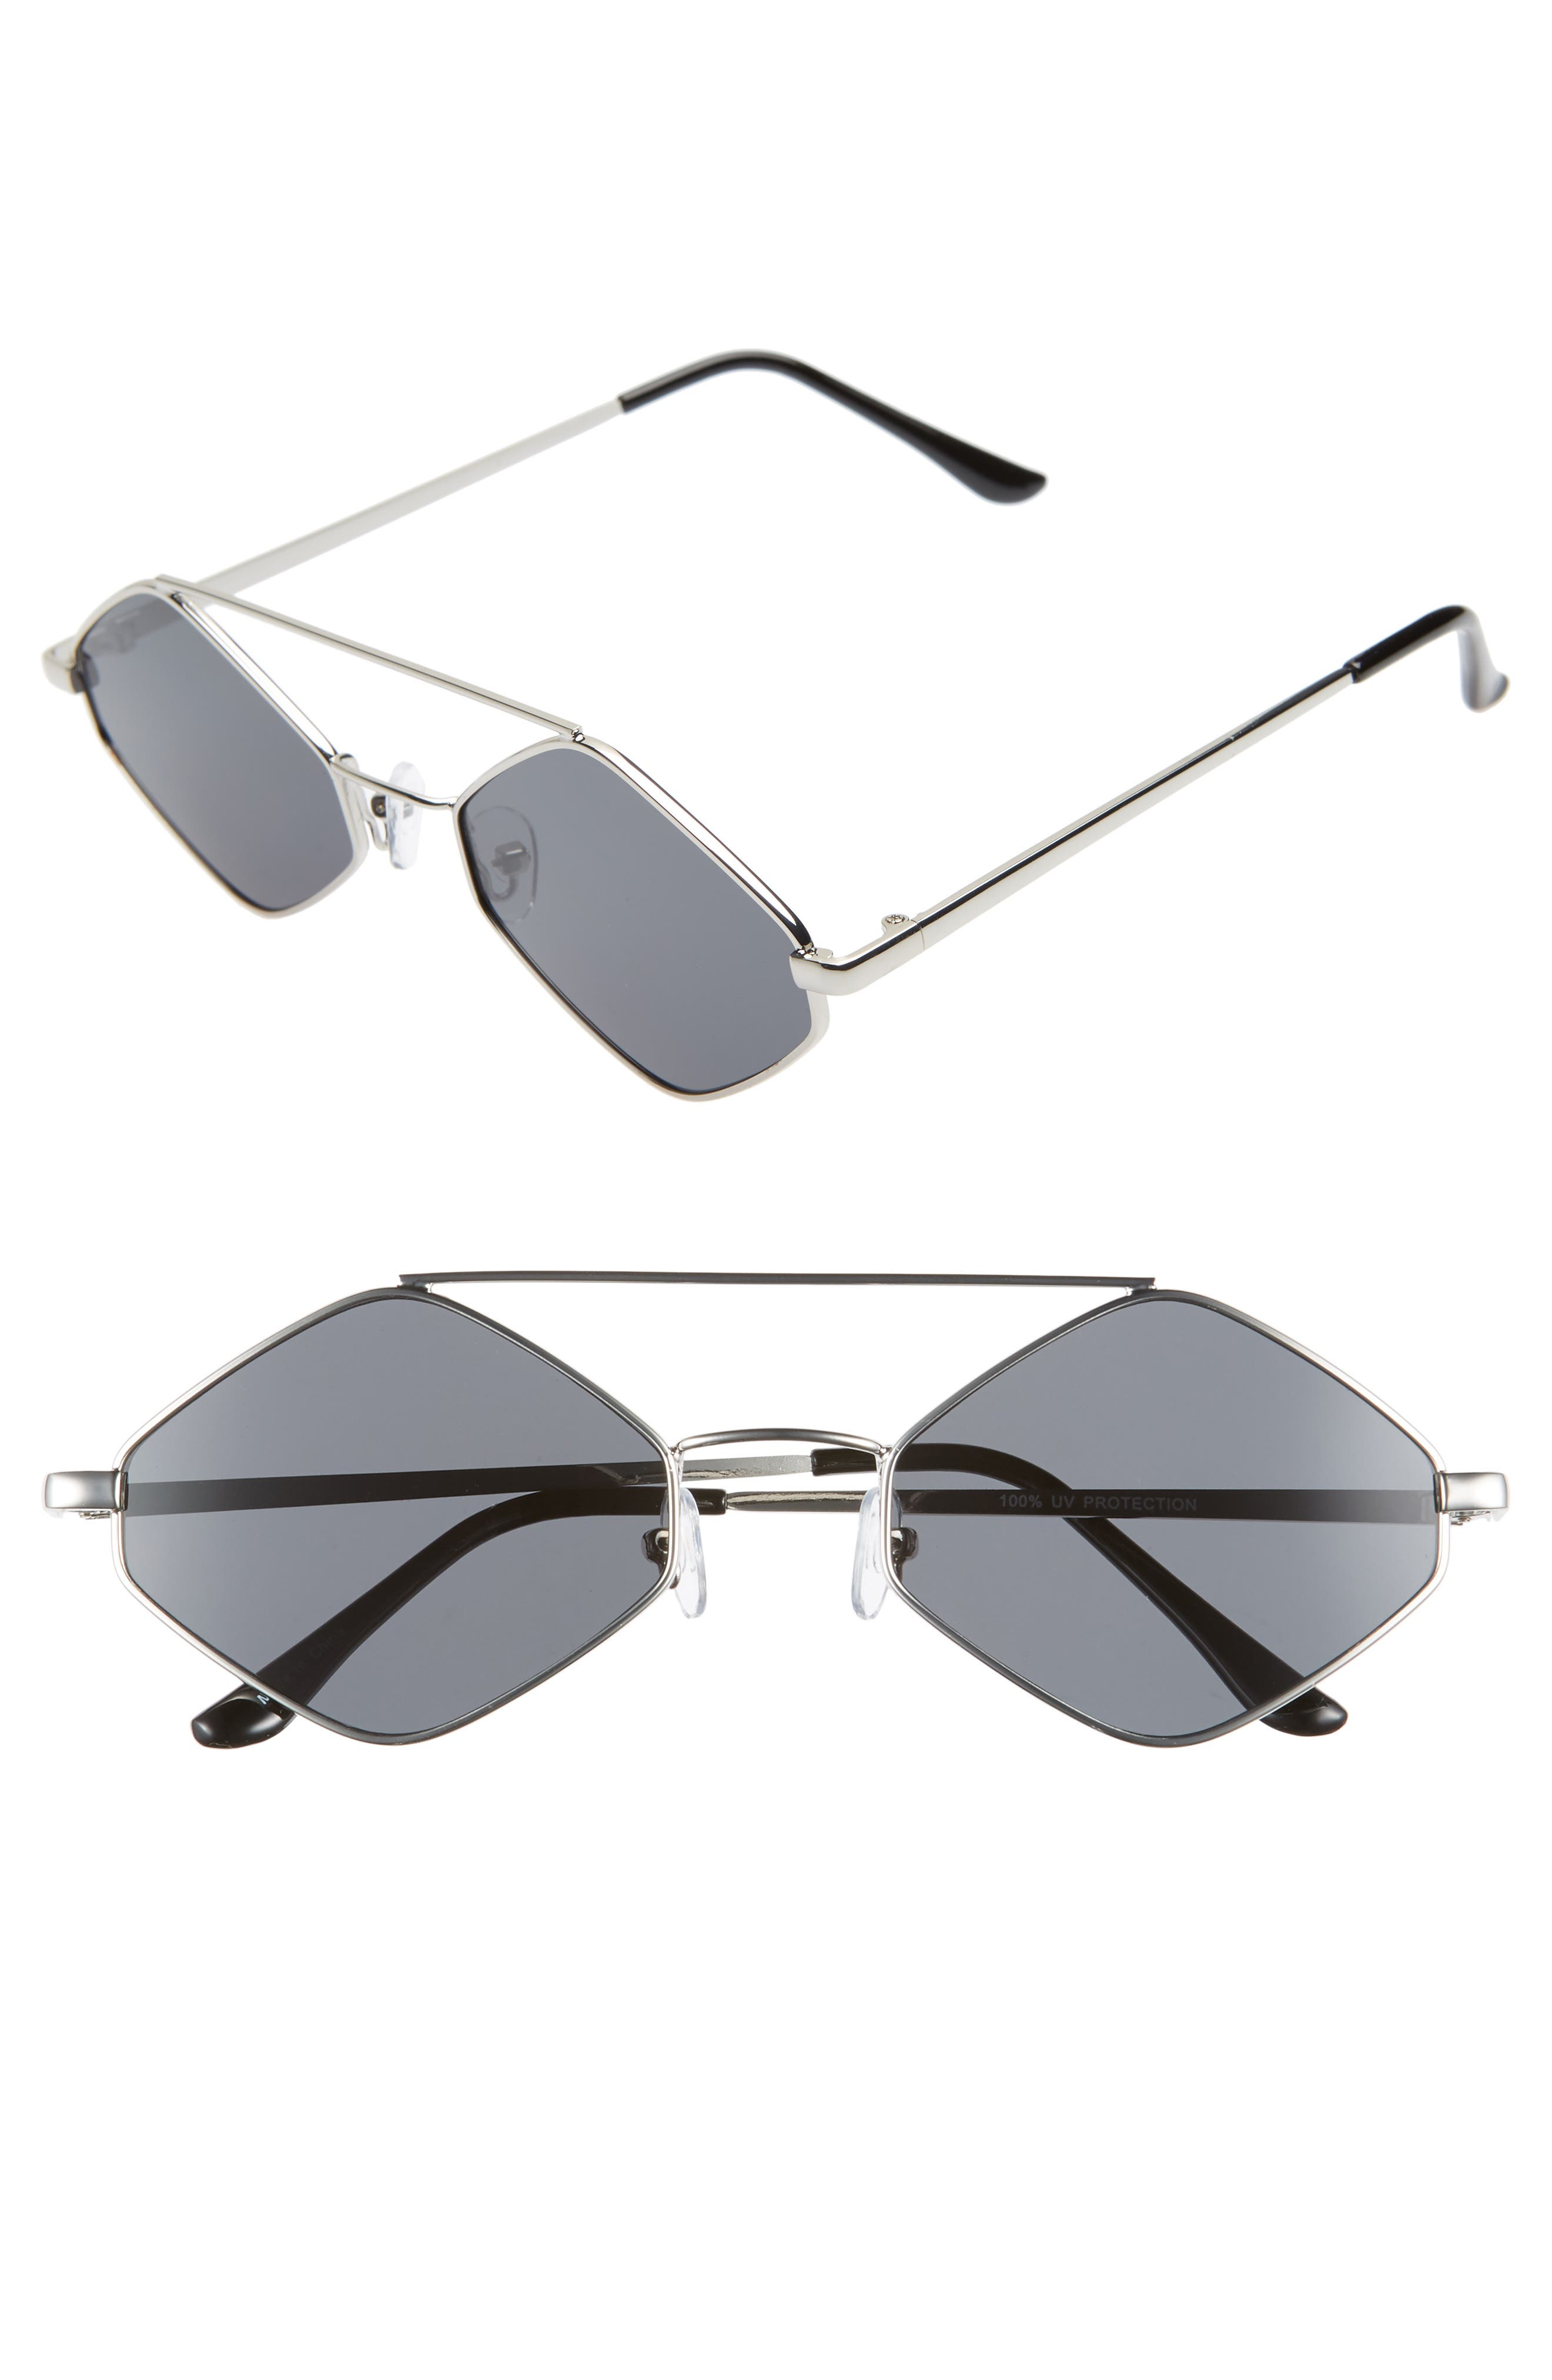 55mm Brow Bar Geometric Sunglasses,                         Main,                         color, SILVER/ BLACK